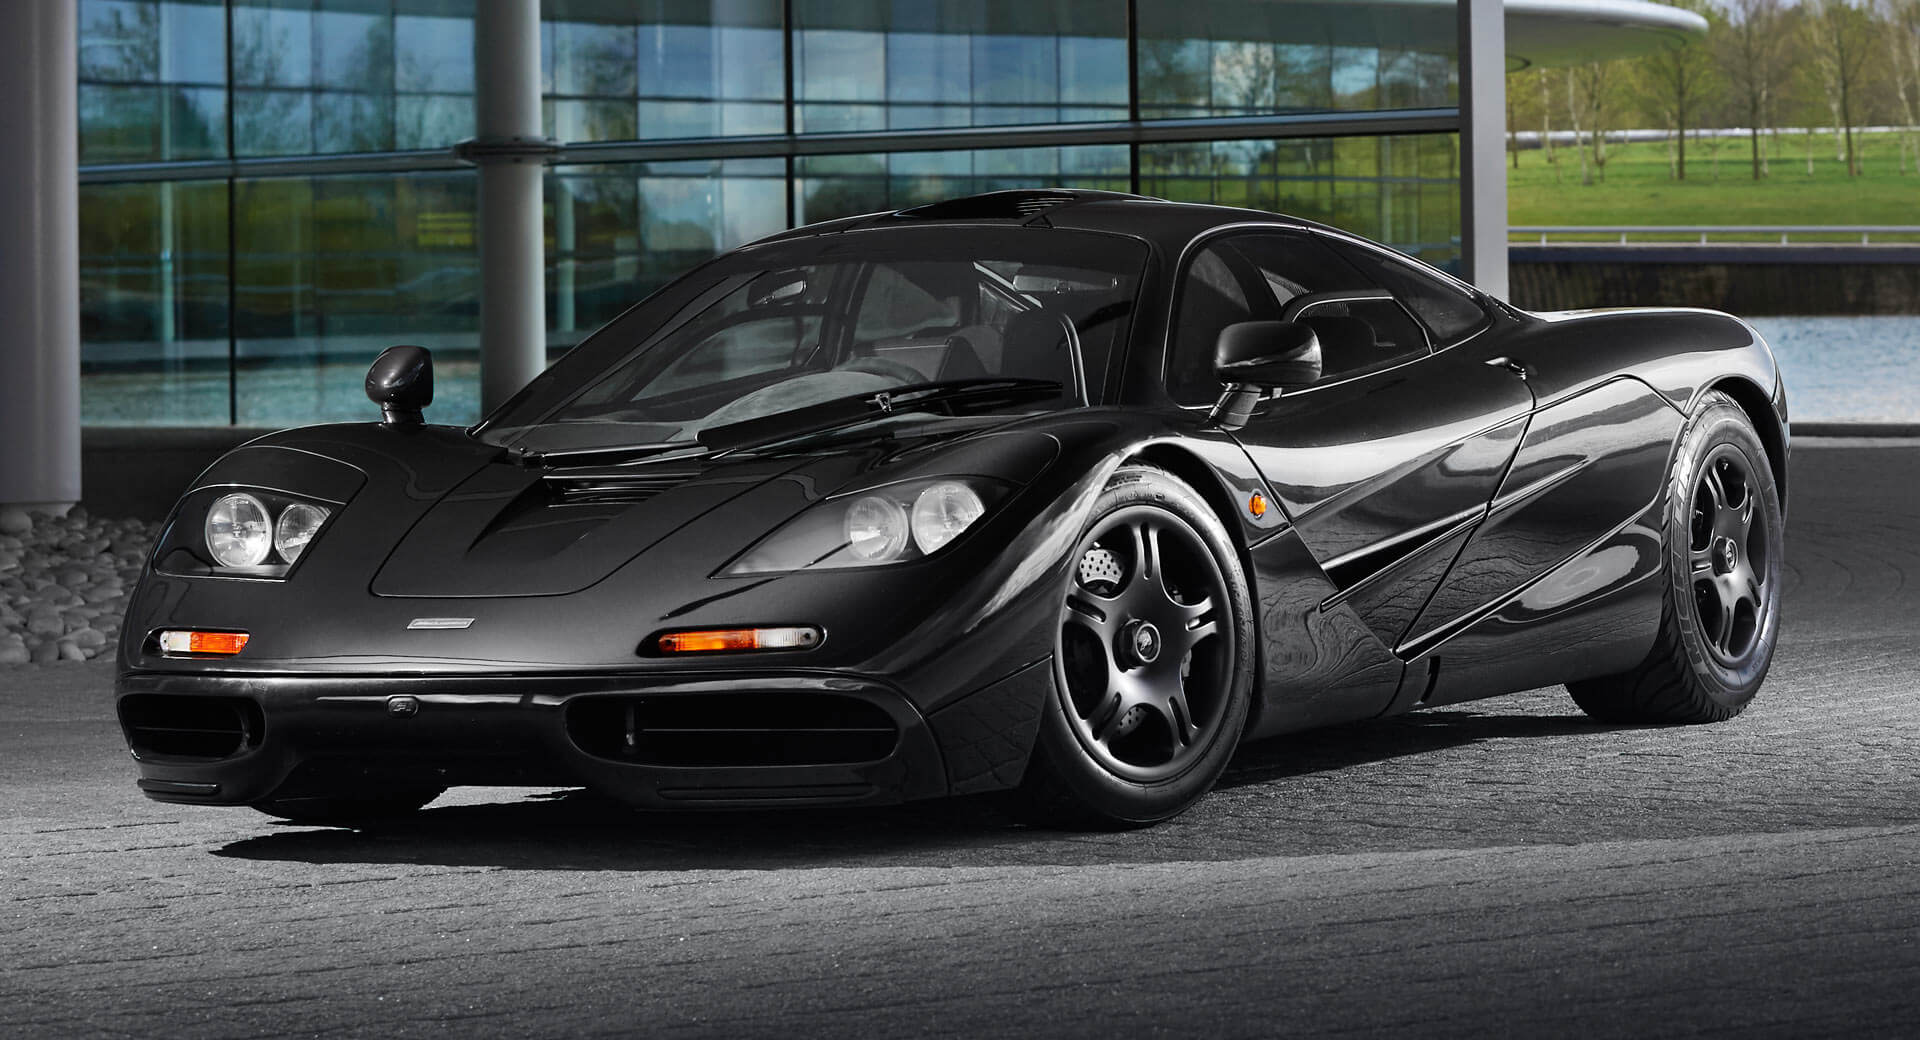 Barely Driven Mclaren F1 Is Up For Sale With An Asking